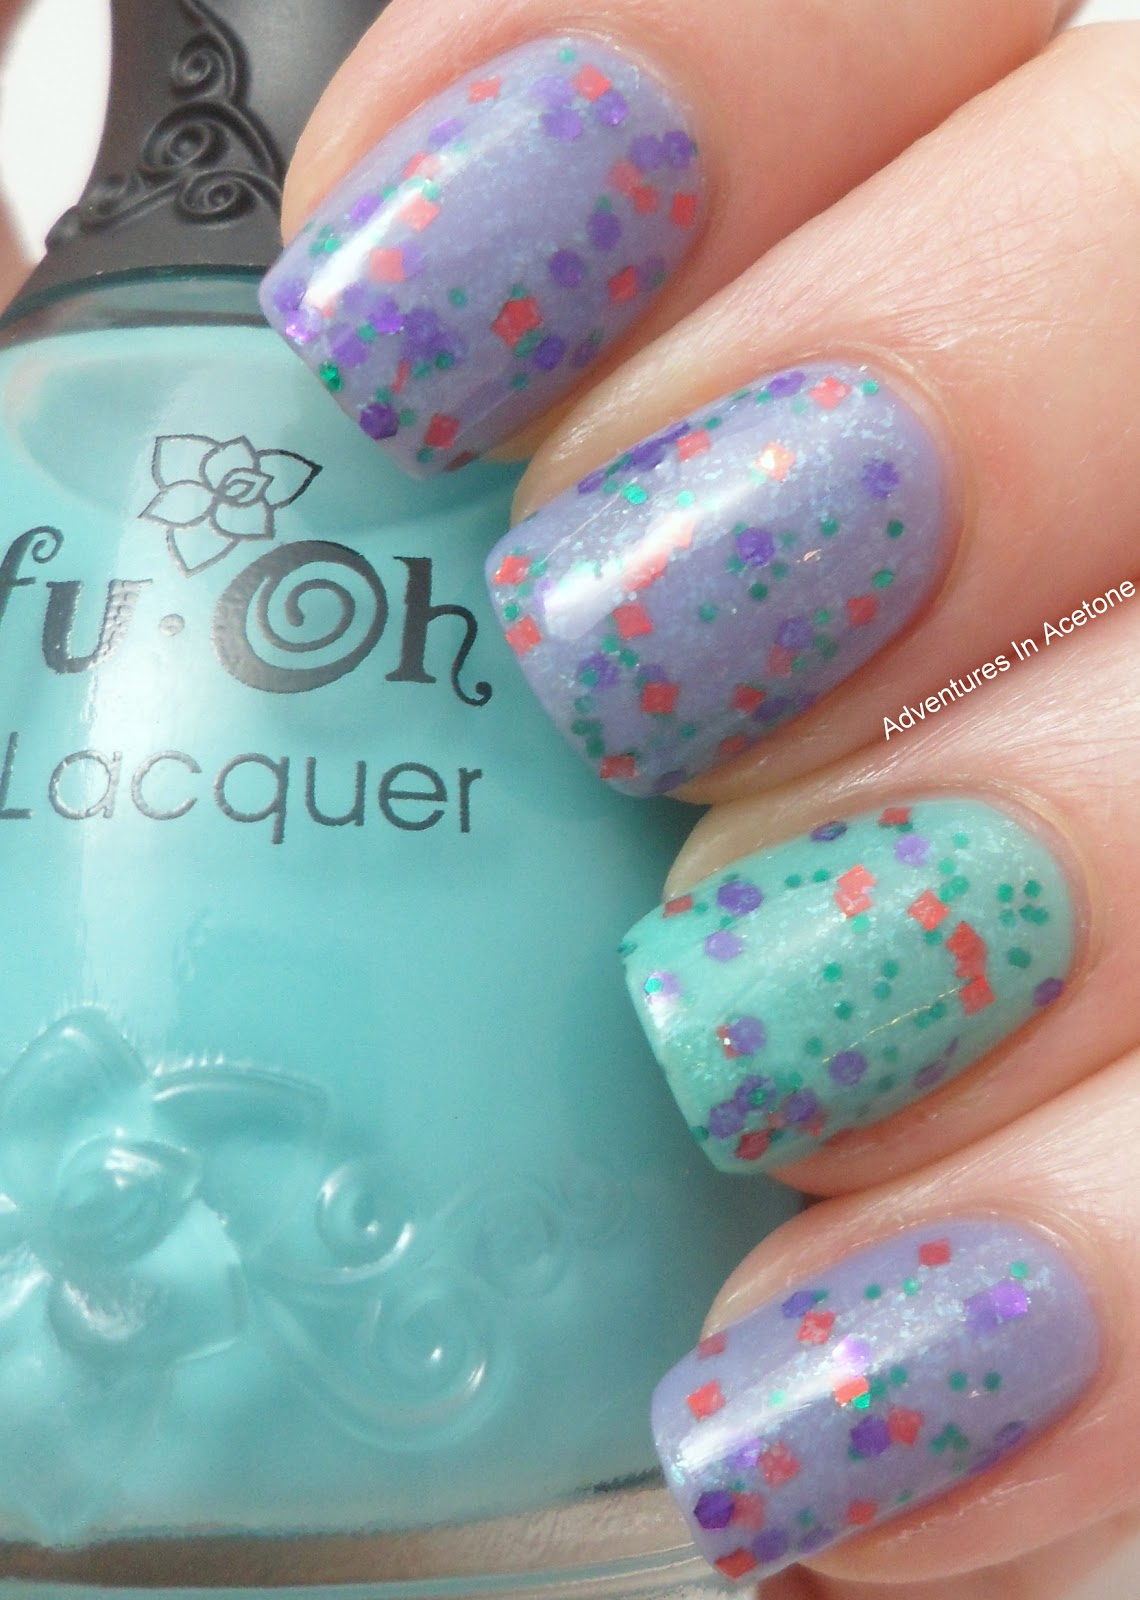 Nfu-Oh Jelly Syrup Mani! - Adventures In Acetone